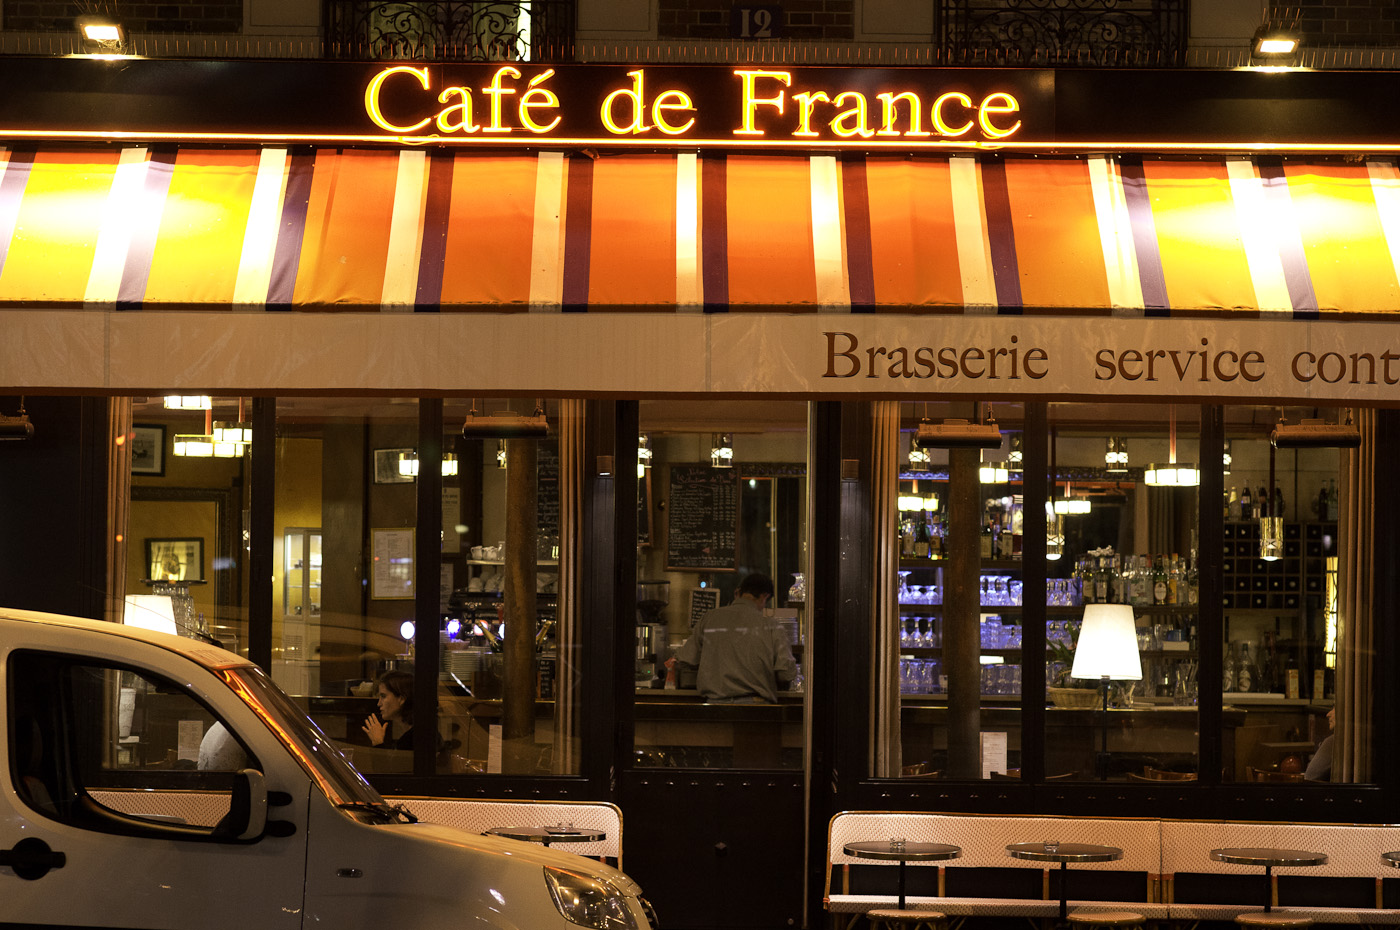 Cafe de France in Paris, Sony NEX-5N & Leica Summarit-M 75/2.5